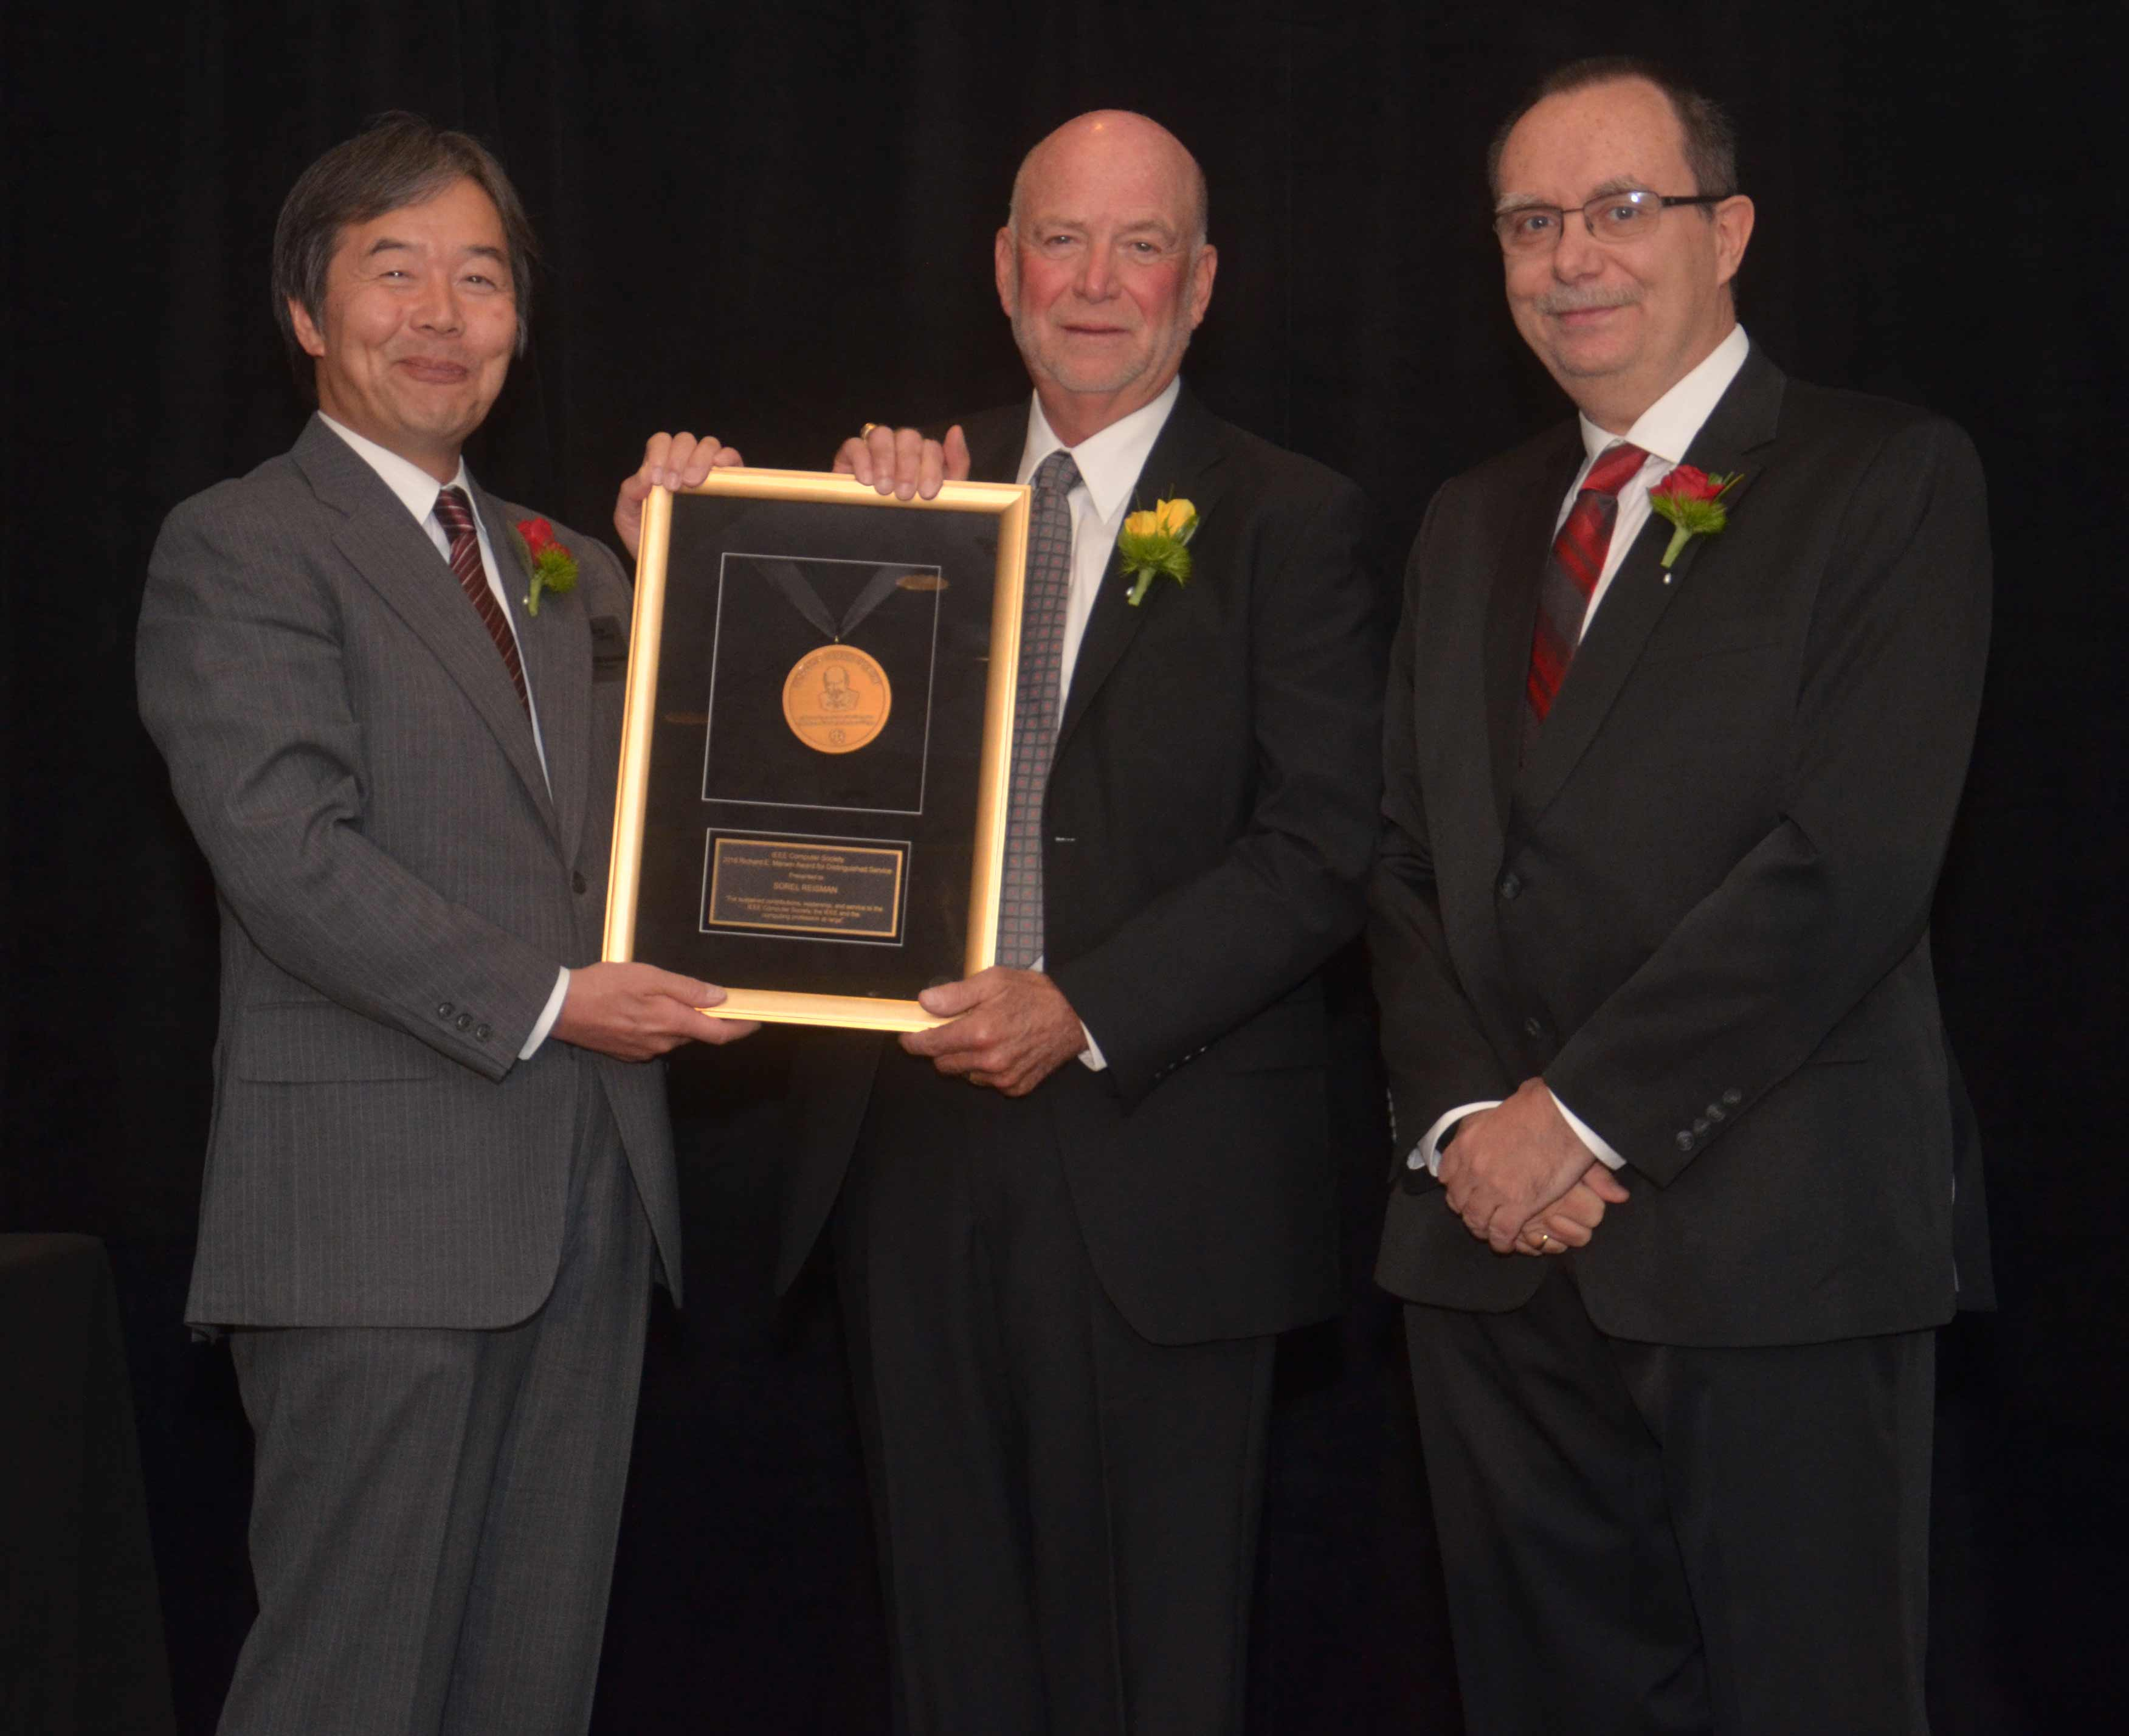 IEEE Computer Society 2011 President and Senior IEEE Member Dr. Sorel Reisman (center) receives the 2018 Richard E. Merwin Award for Distinguished Service.